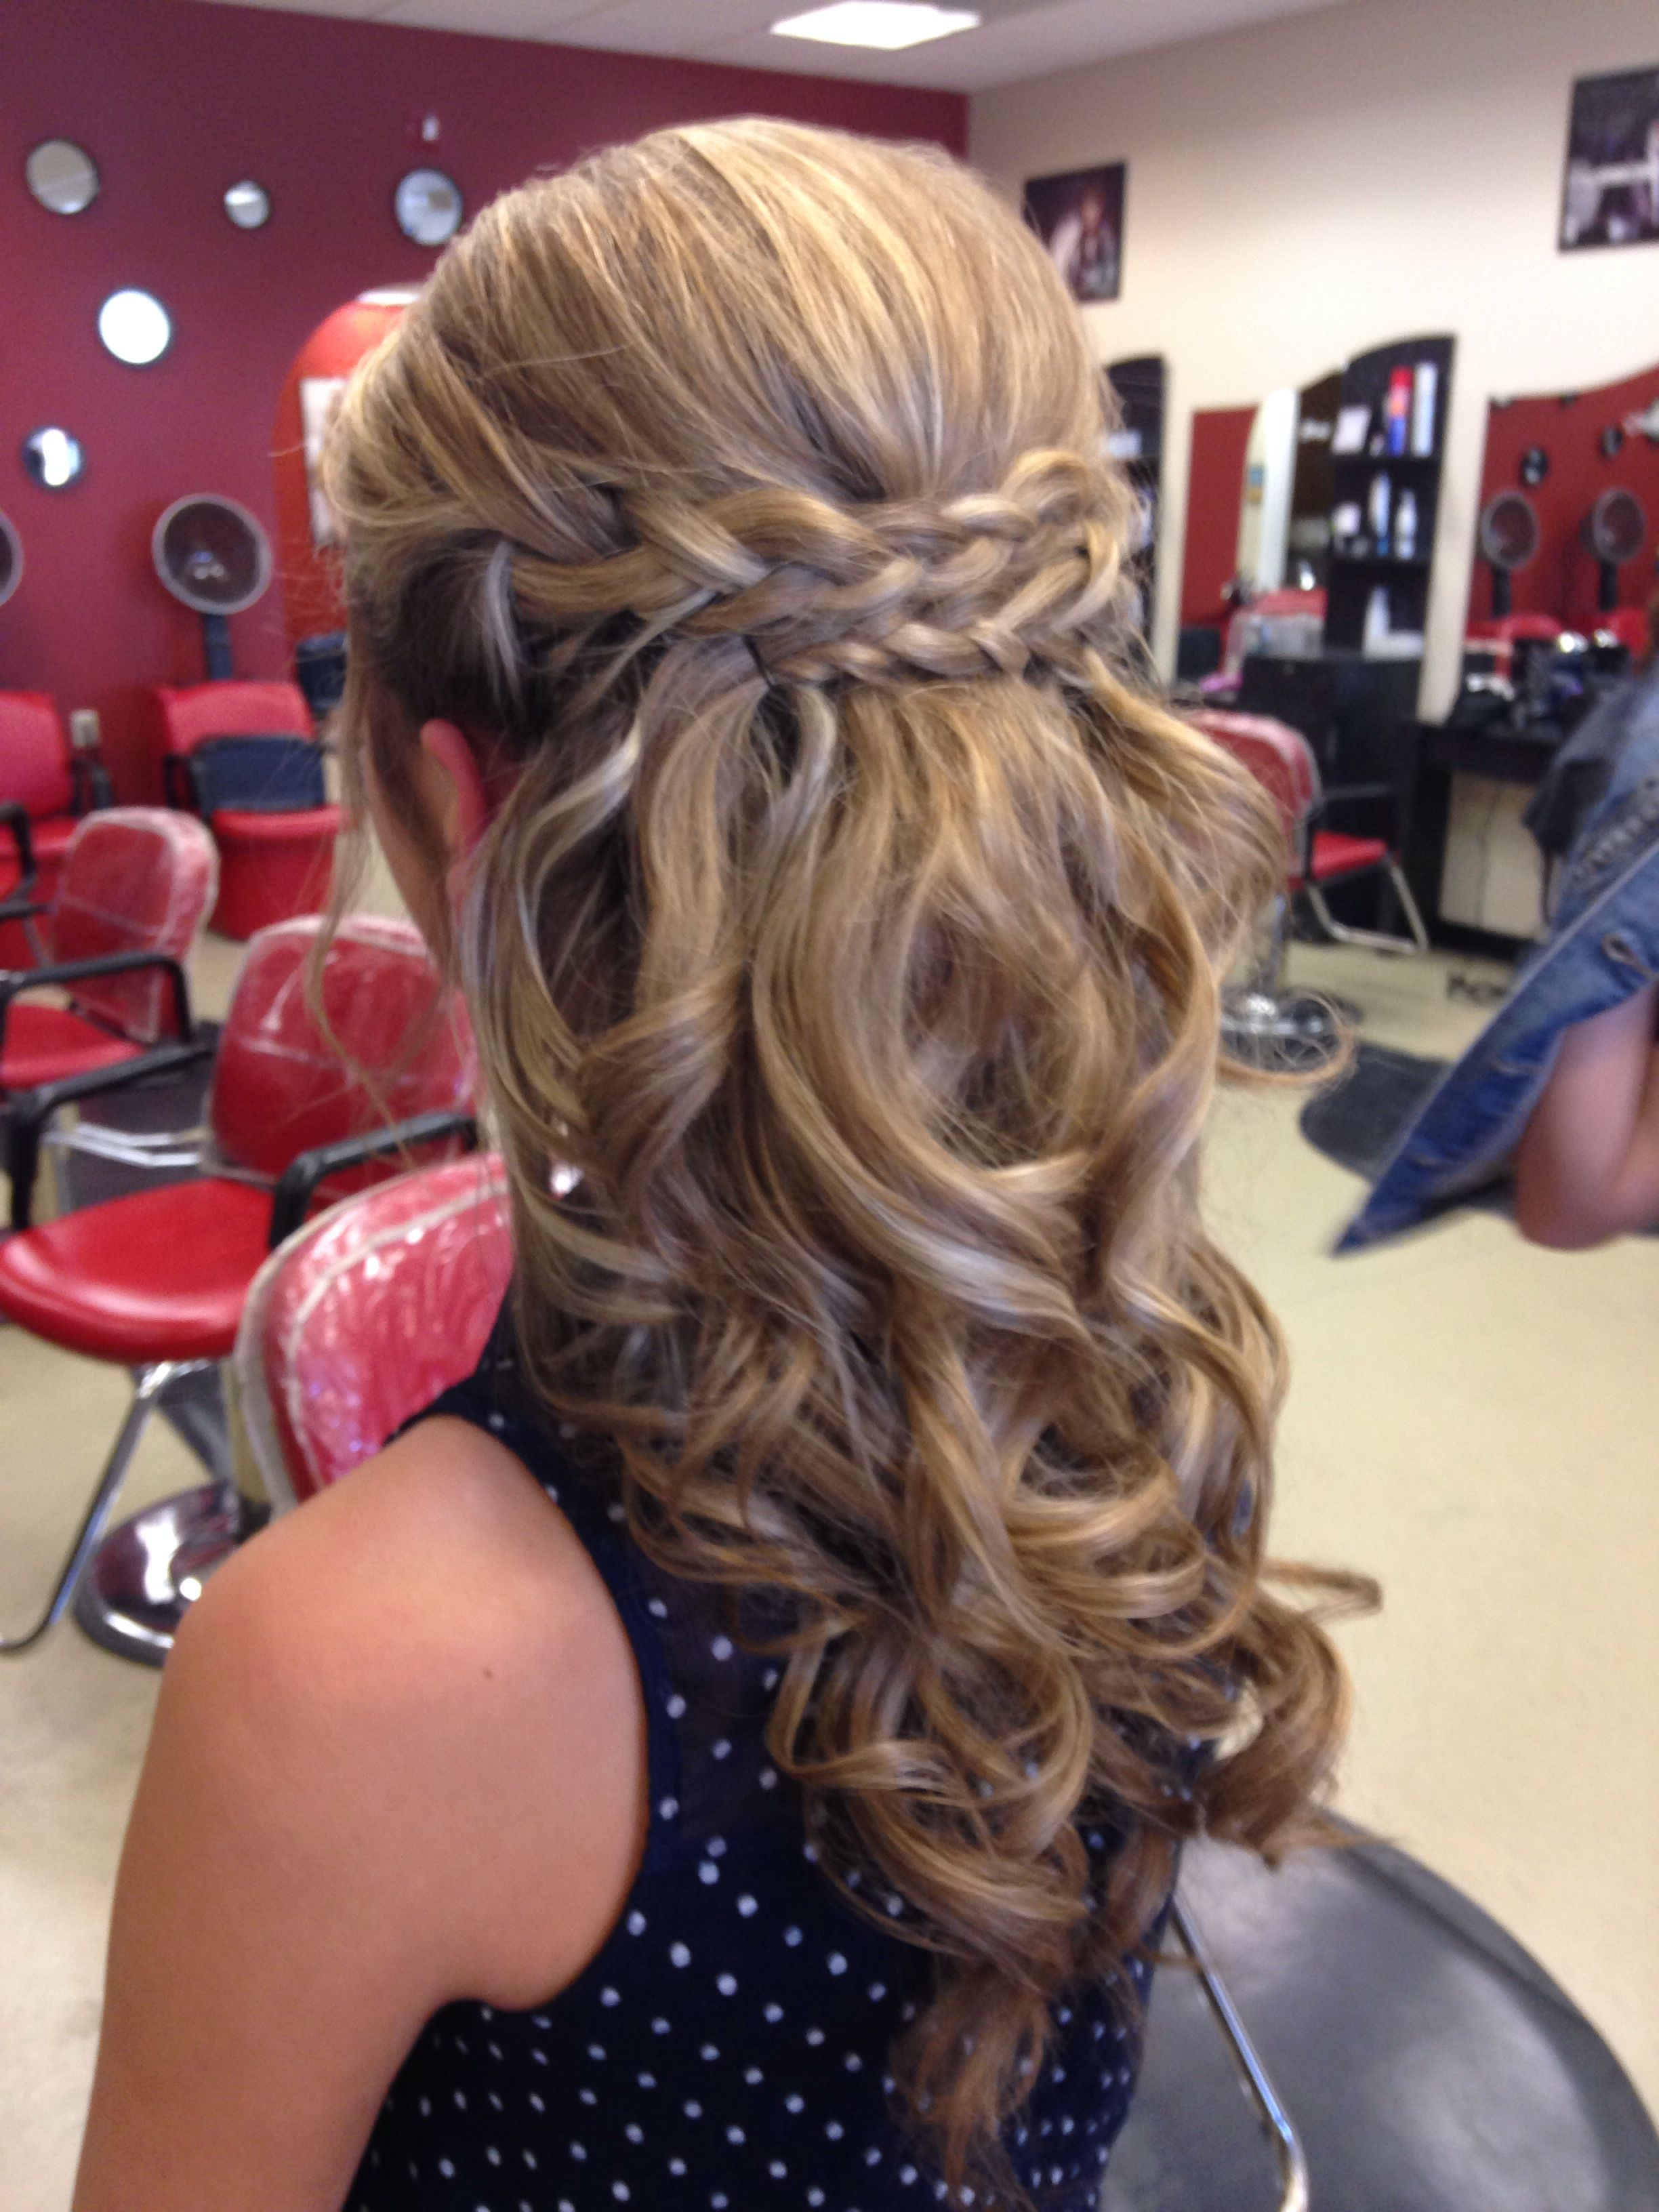 Super cute hairdo that was done for a semi formal hair